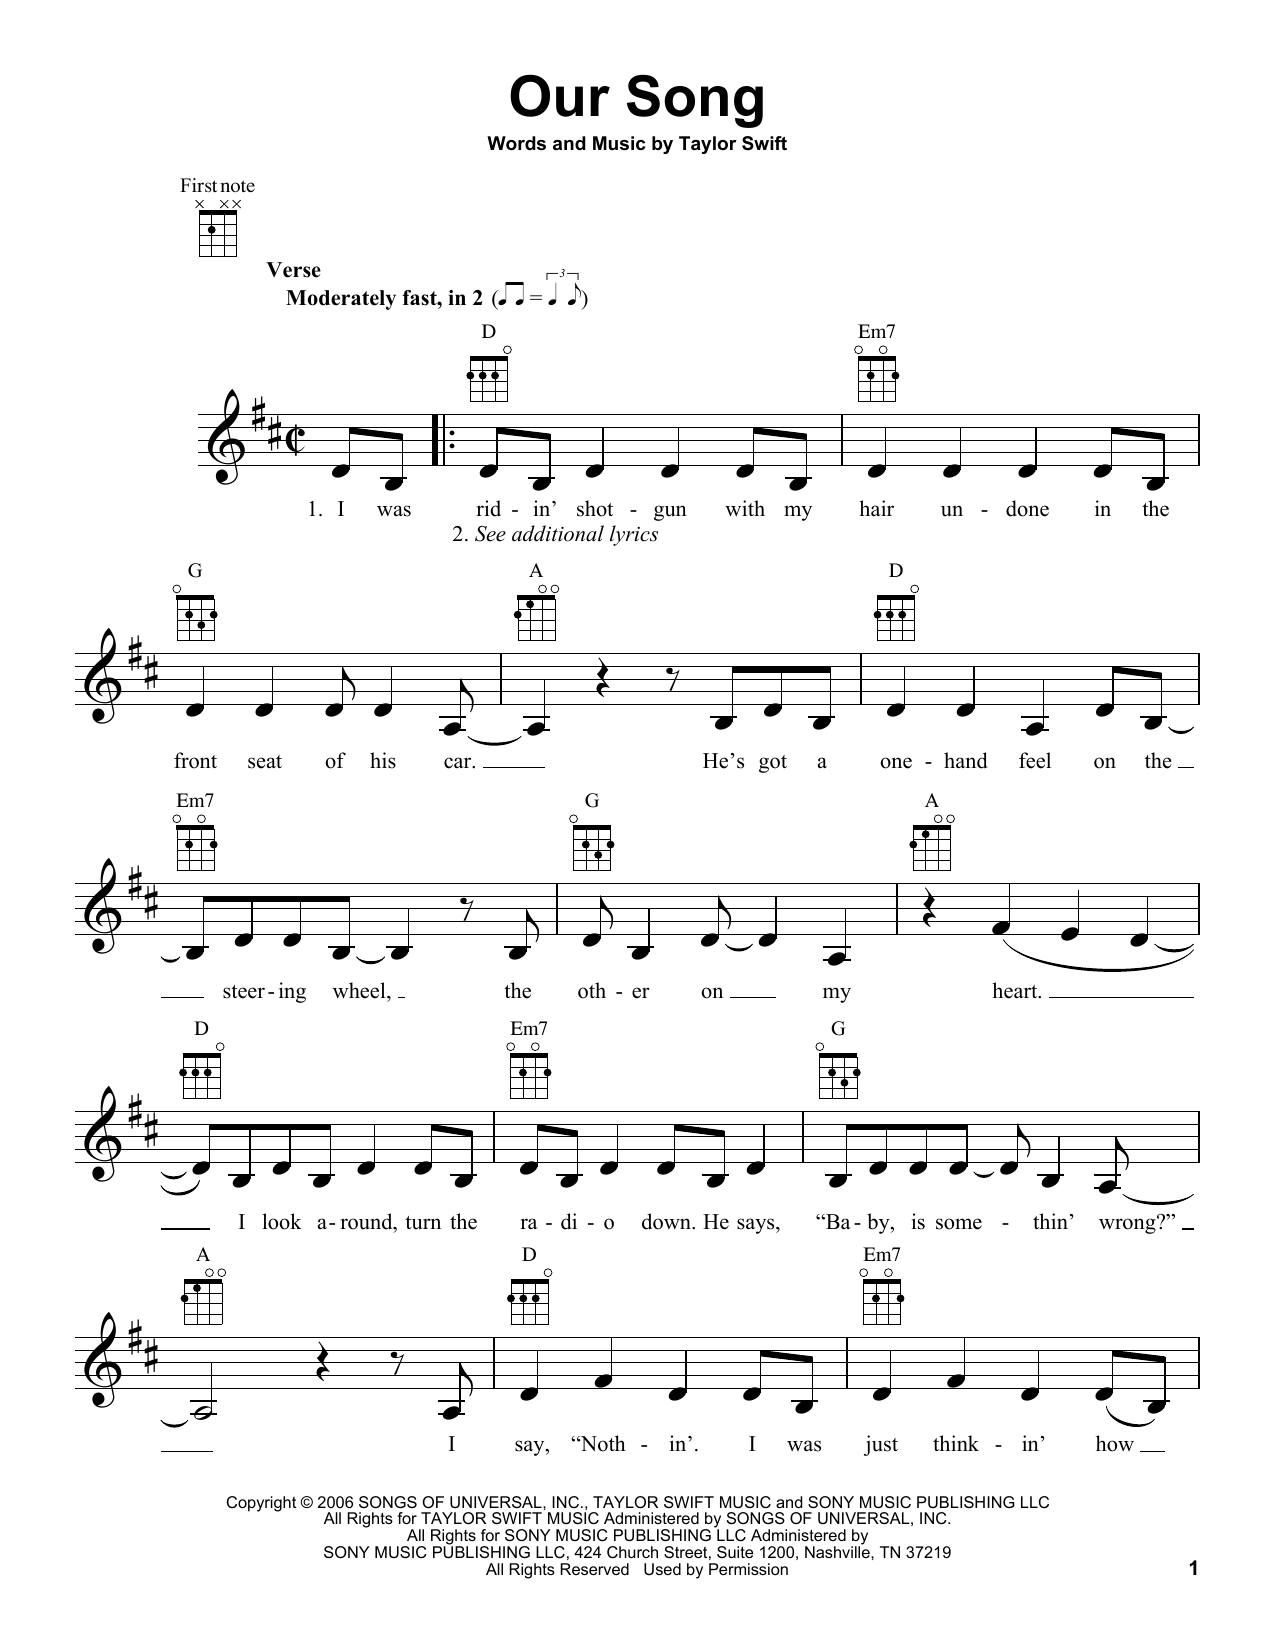 Ukulele ukulele tabs taylor swift : Our Song by Taylor Swift - Ukulele - Guitar Instructor